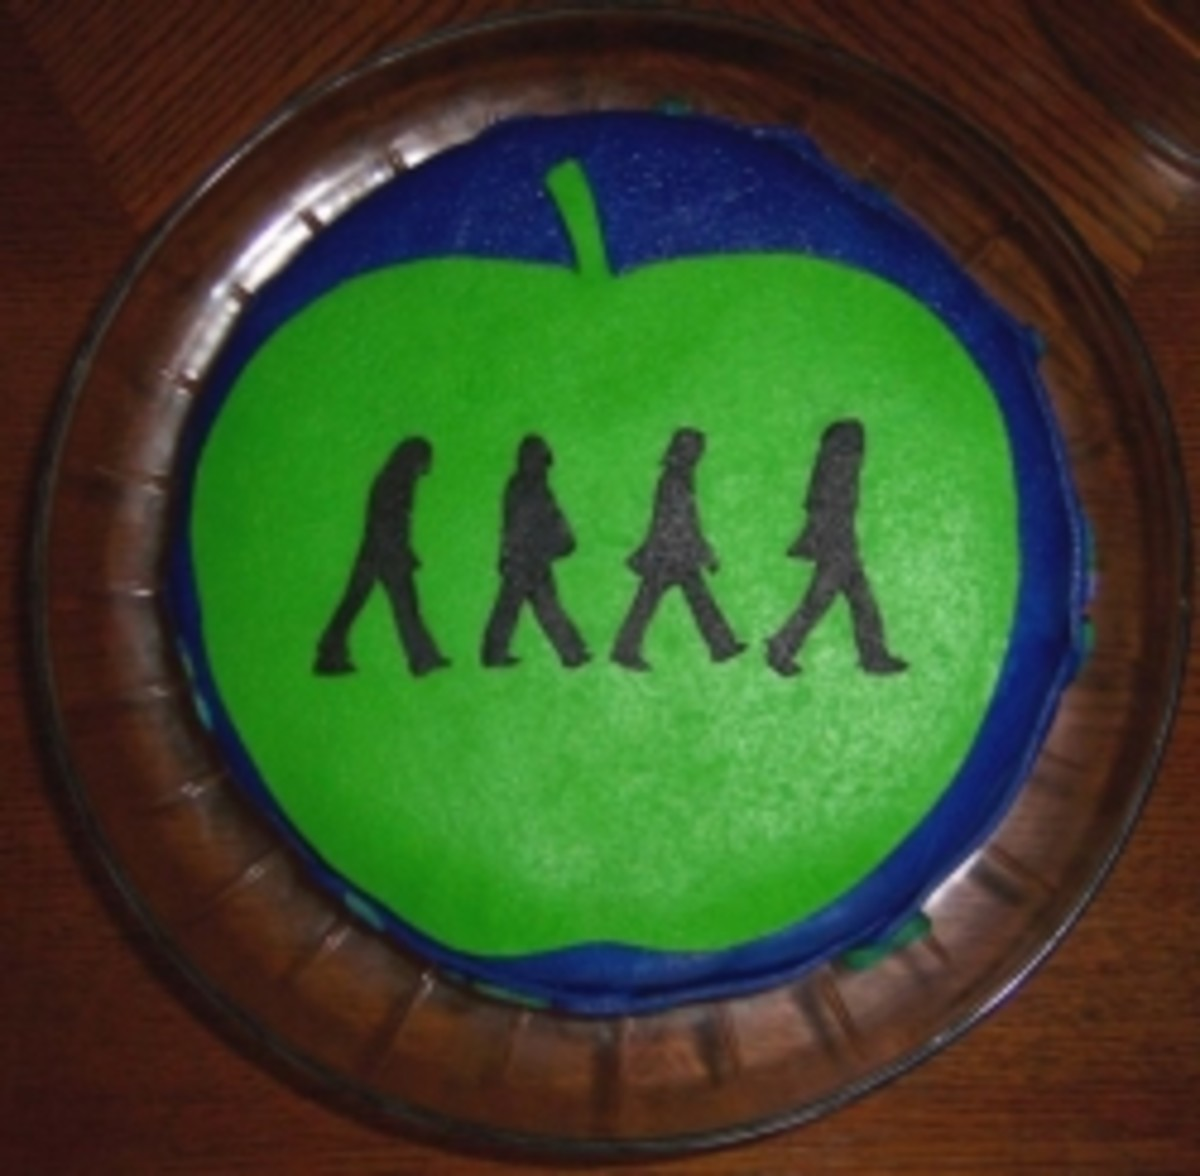 Beatles Abbey Road Fondant Cake I made for my partner's 40th birthday.